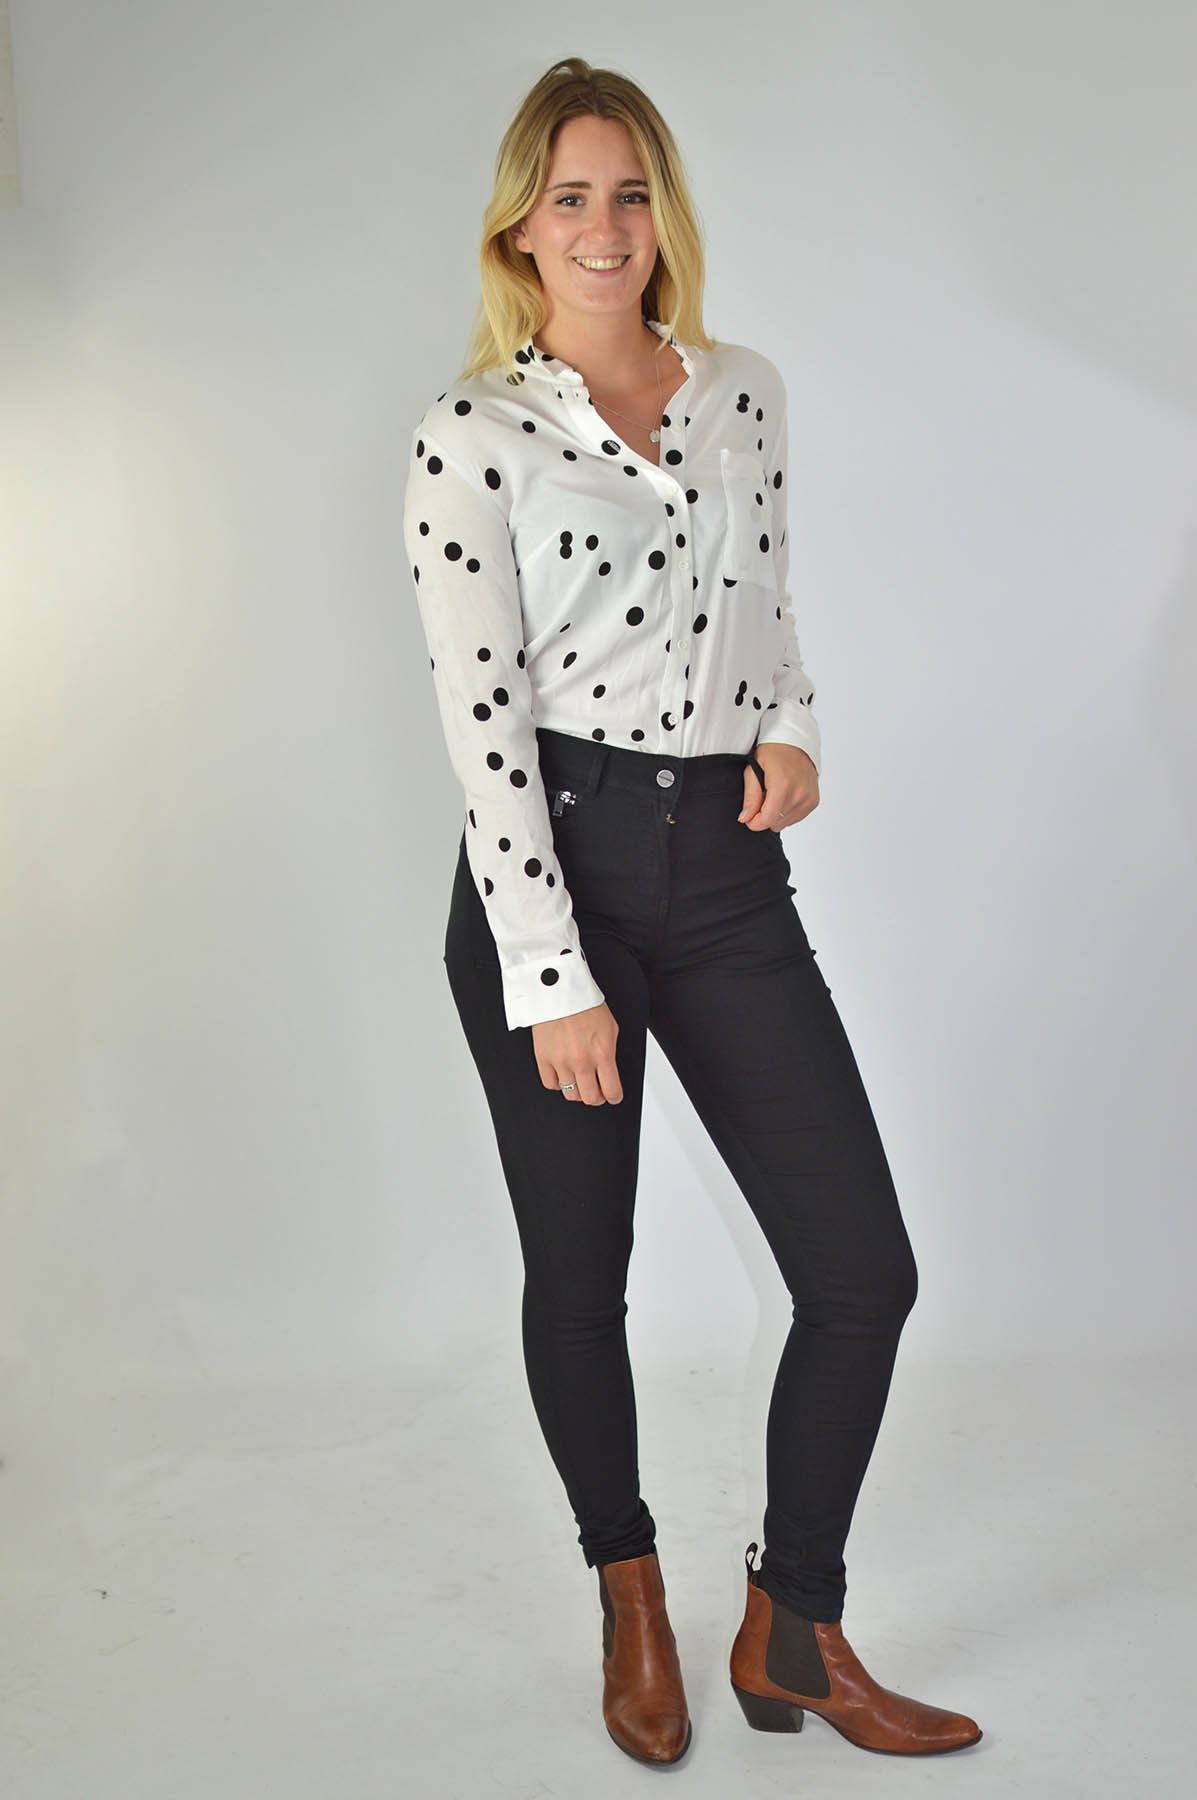 NEXT-Black-White-Spotted-Long-Sleeve-Silky-Shirt-Blouse-SALE-Was-24 thumbnail 15